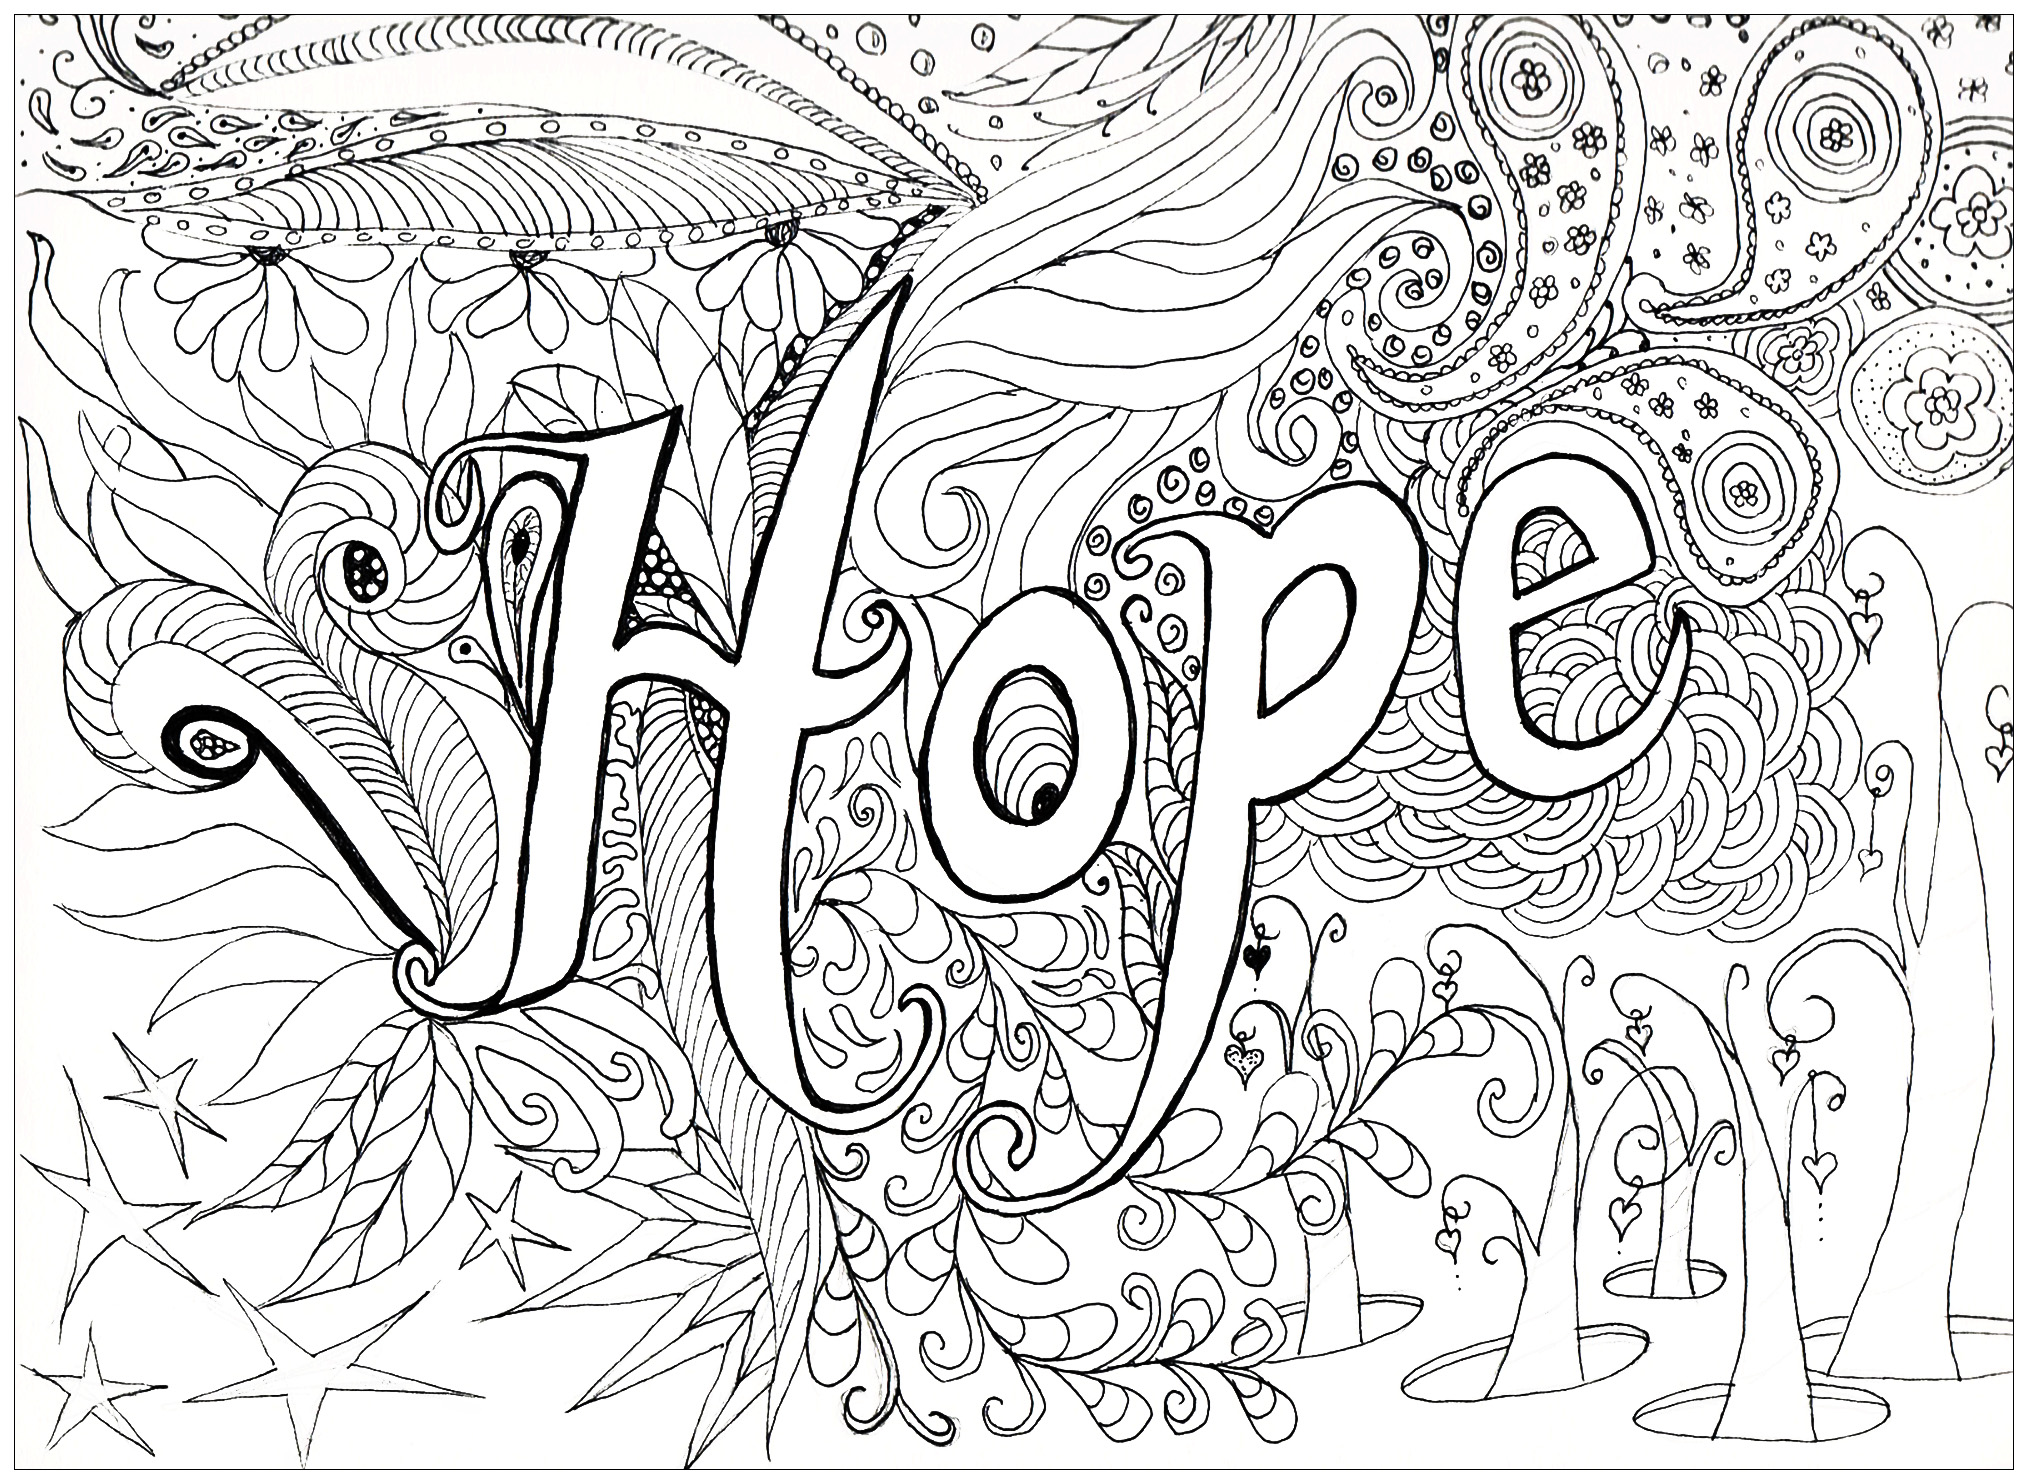 Geliefde Hope - Anti stress Adult Coloring Pages #KD41